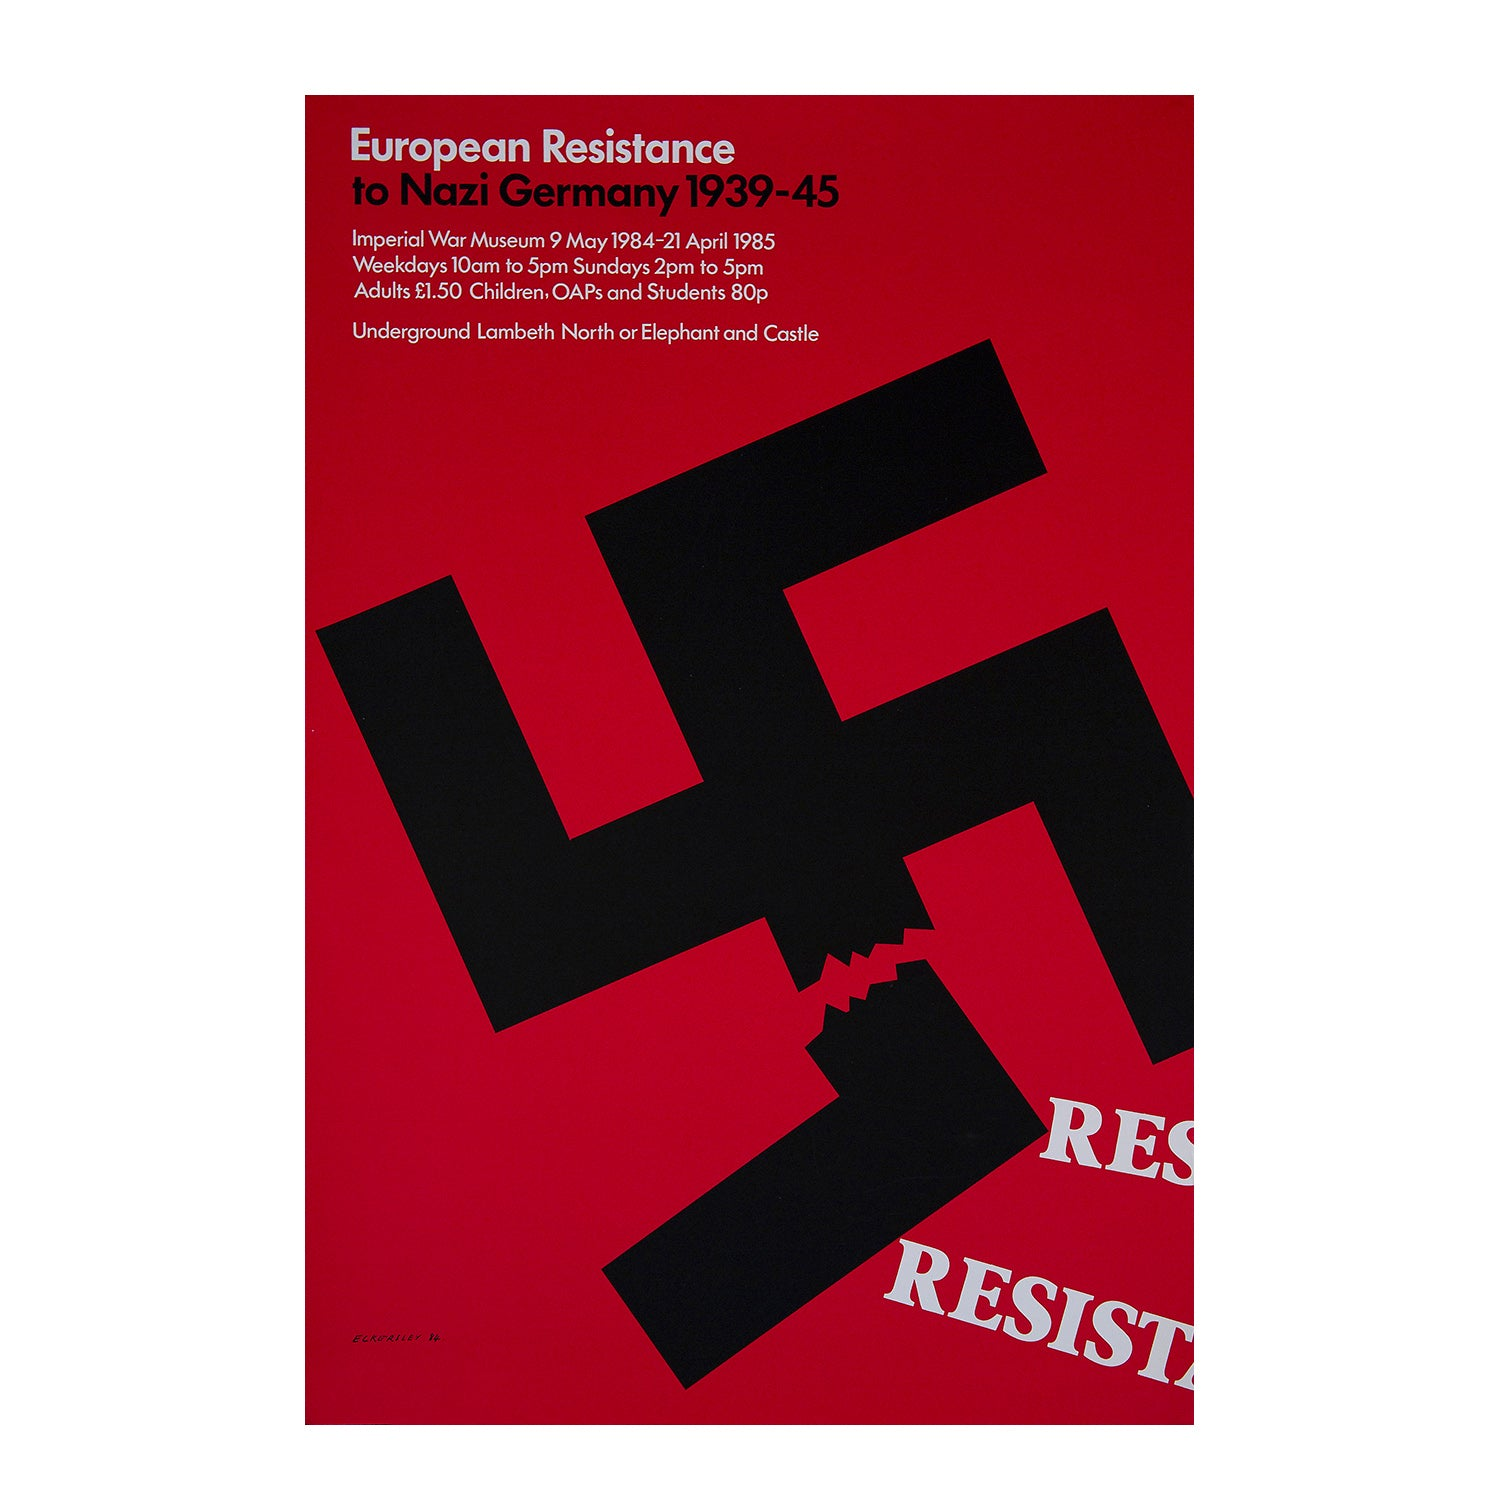 European Resistance To Nazi Germany 1939 45 Twentieth Century Posters